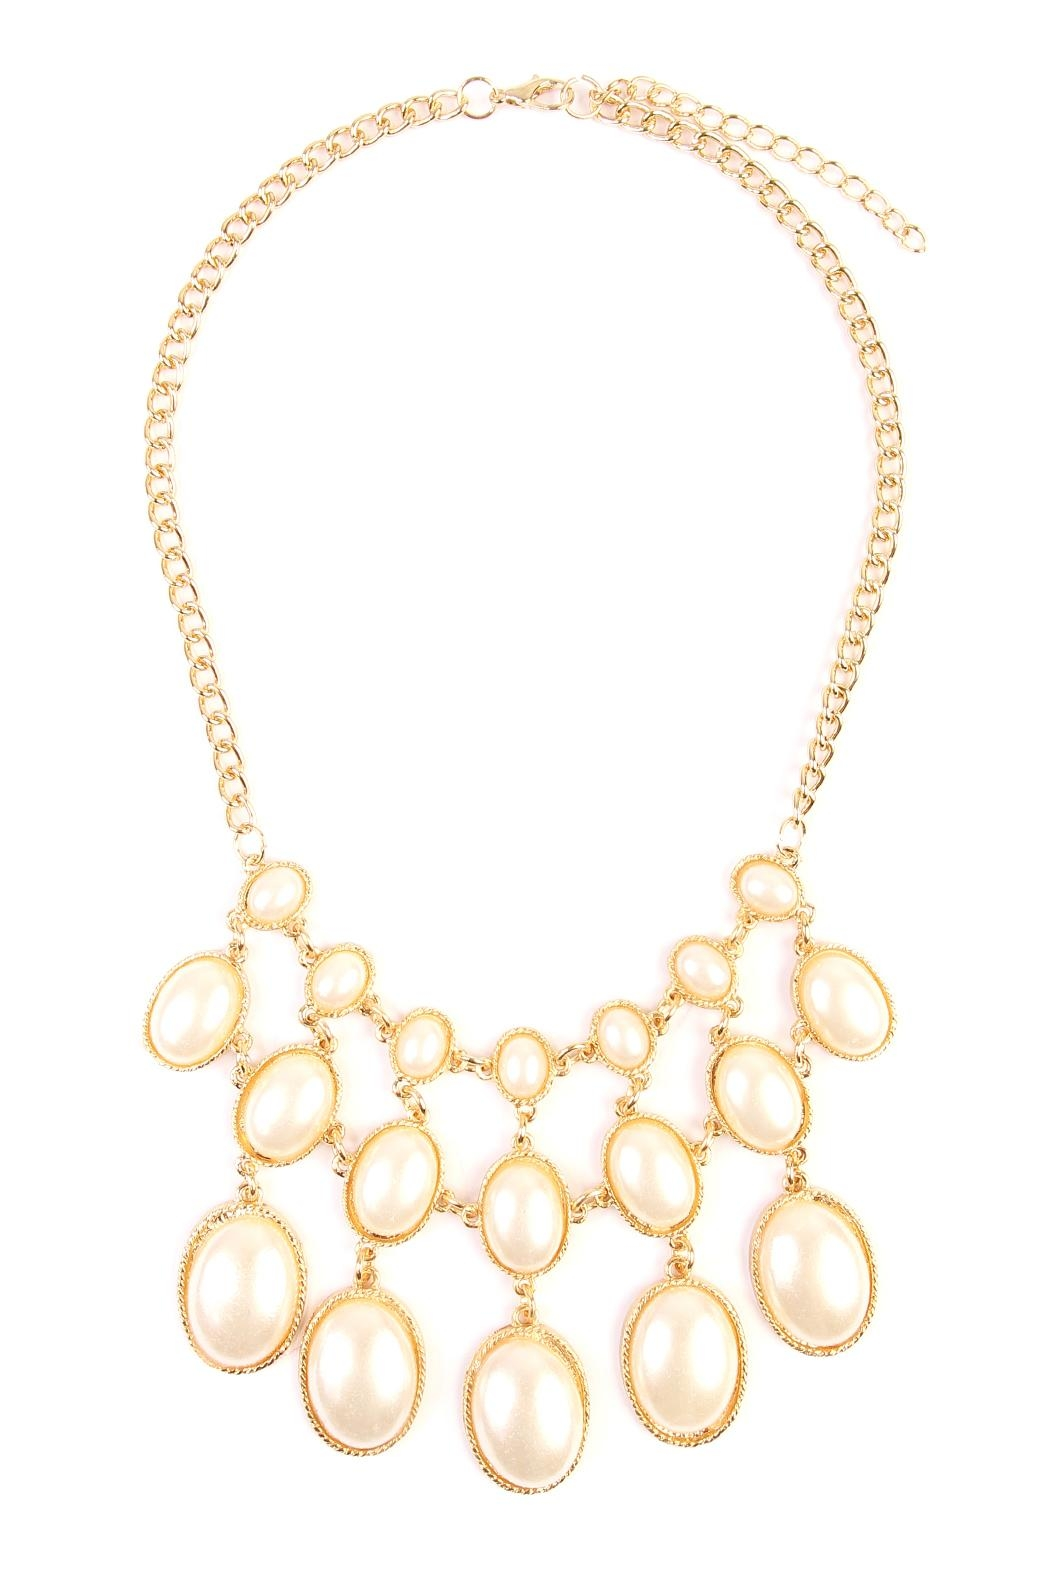 Riah Fashion Vintage Oval Pearl Necklace - Main Image